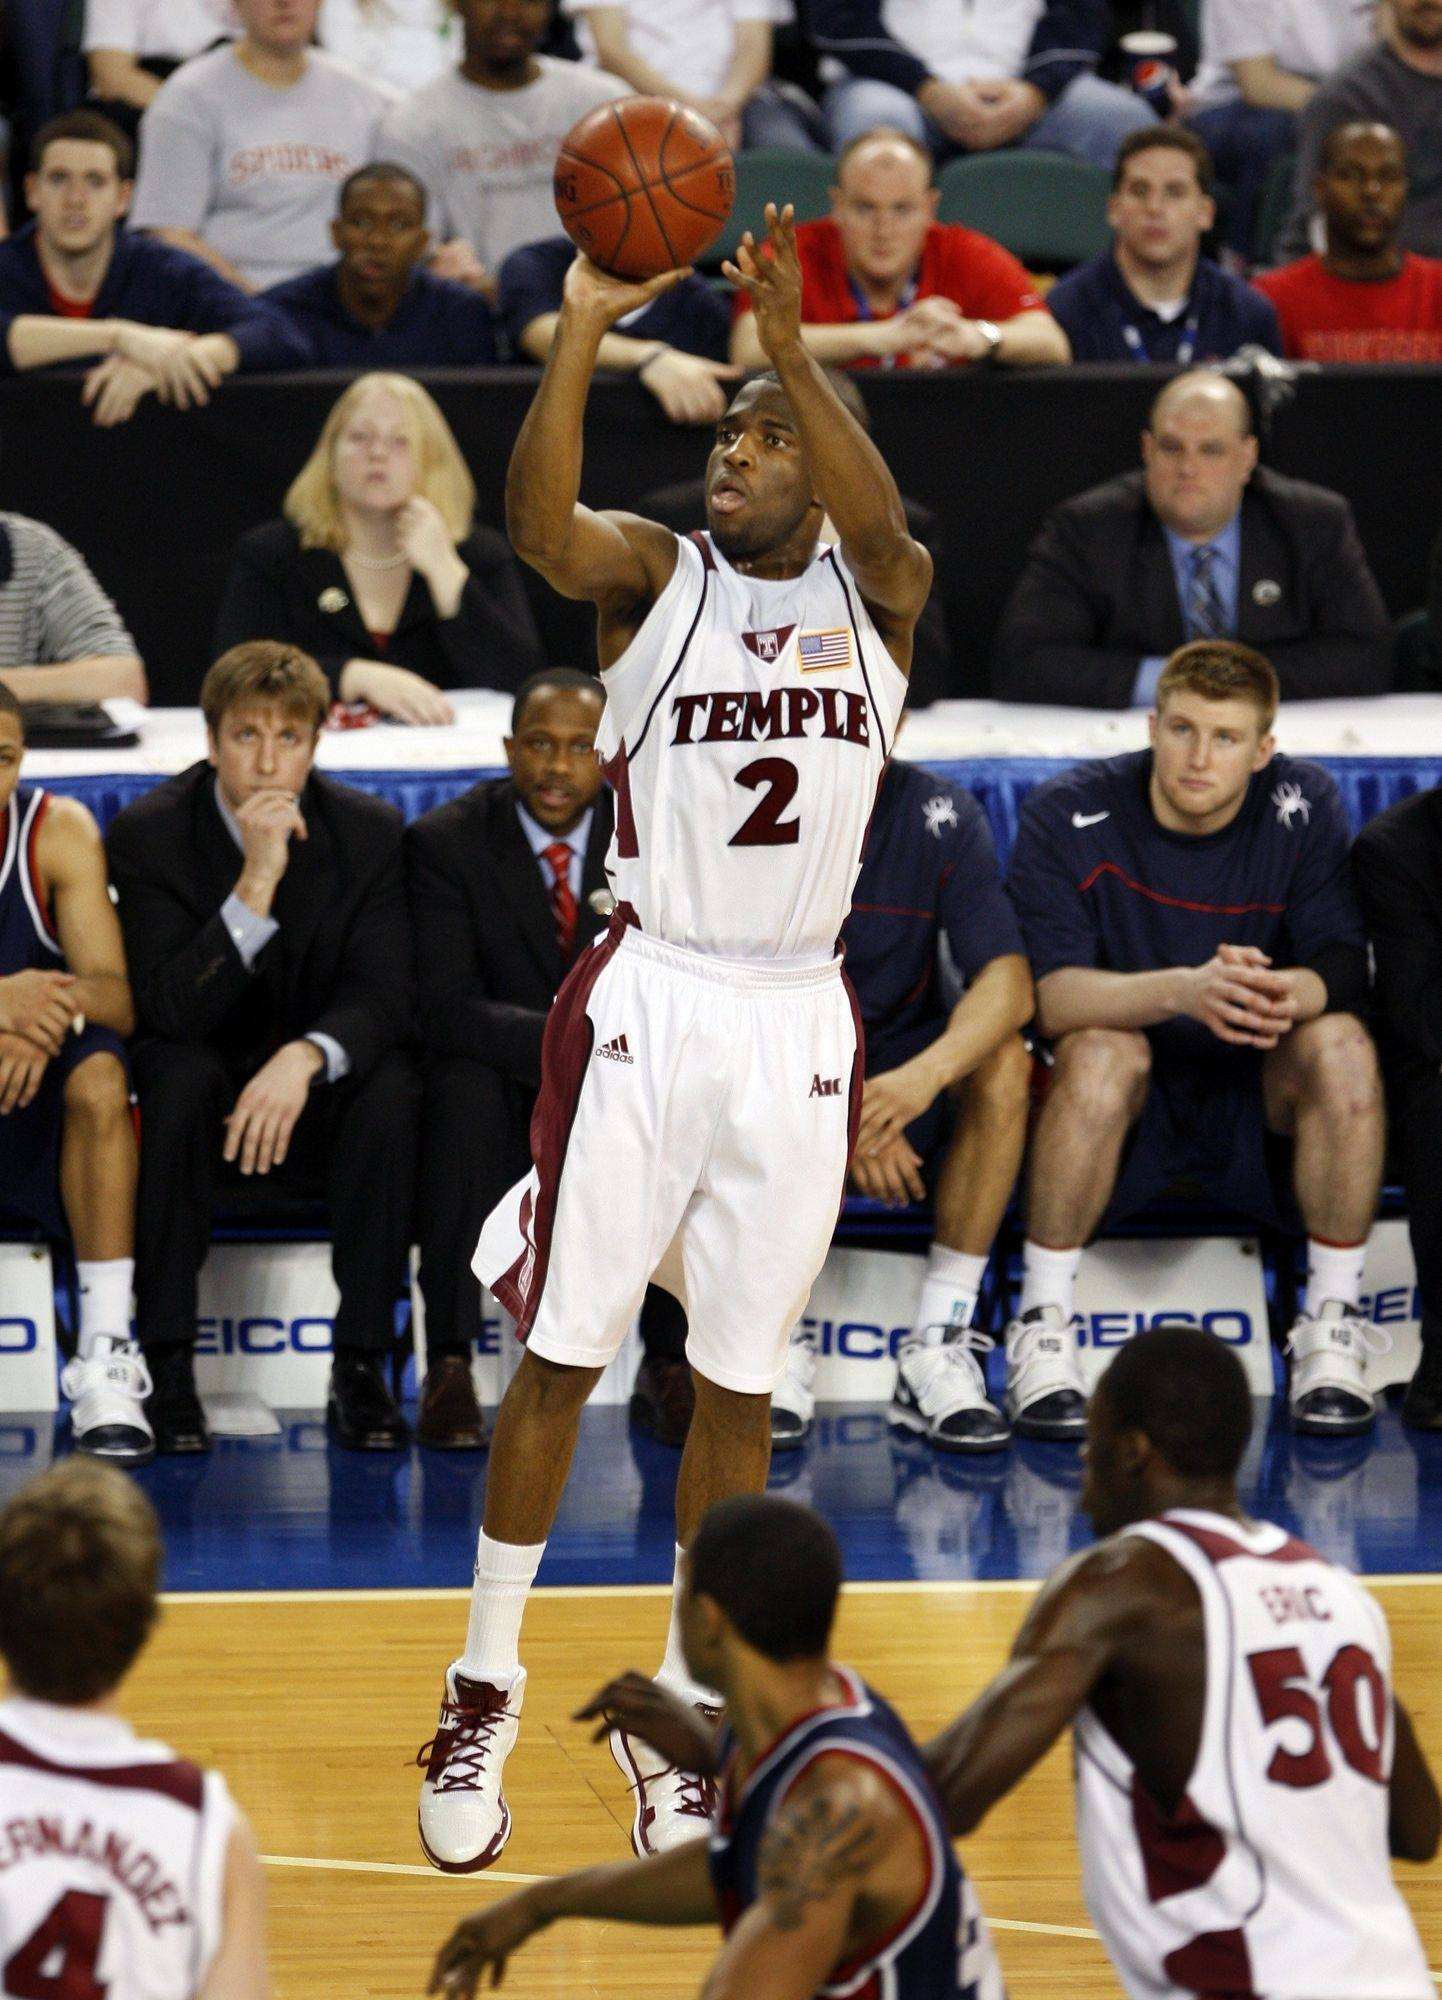 Temple's Ryan Brooks helped the Owls win their third straight Atlantic 10 title on Sunday, beating Richmond.